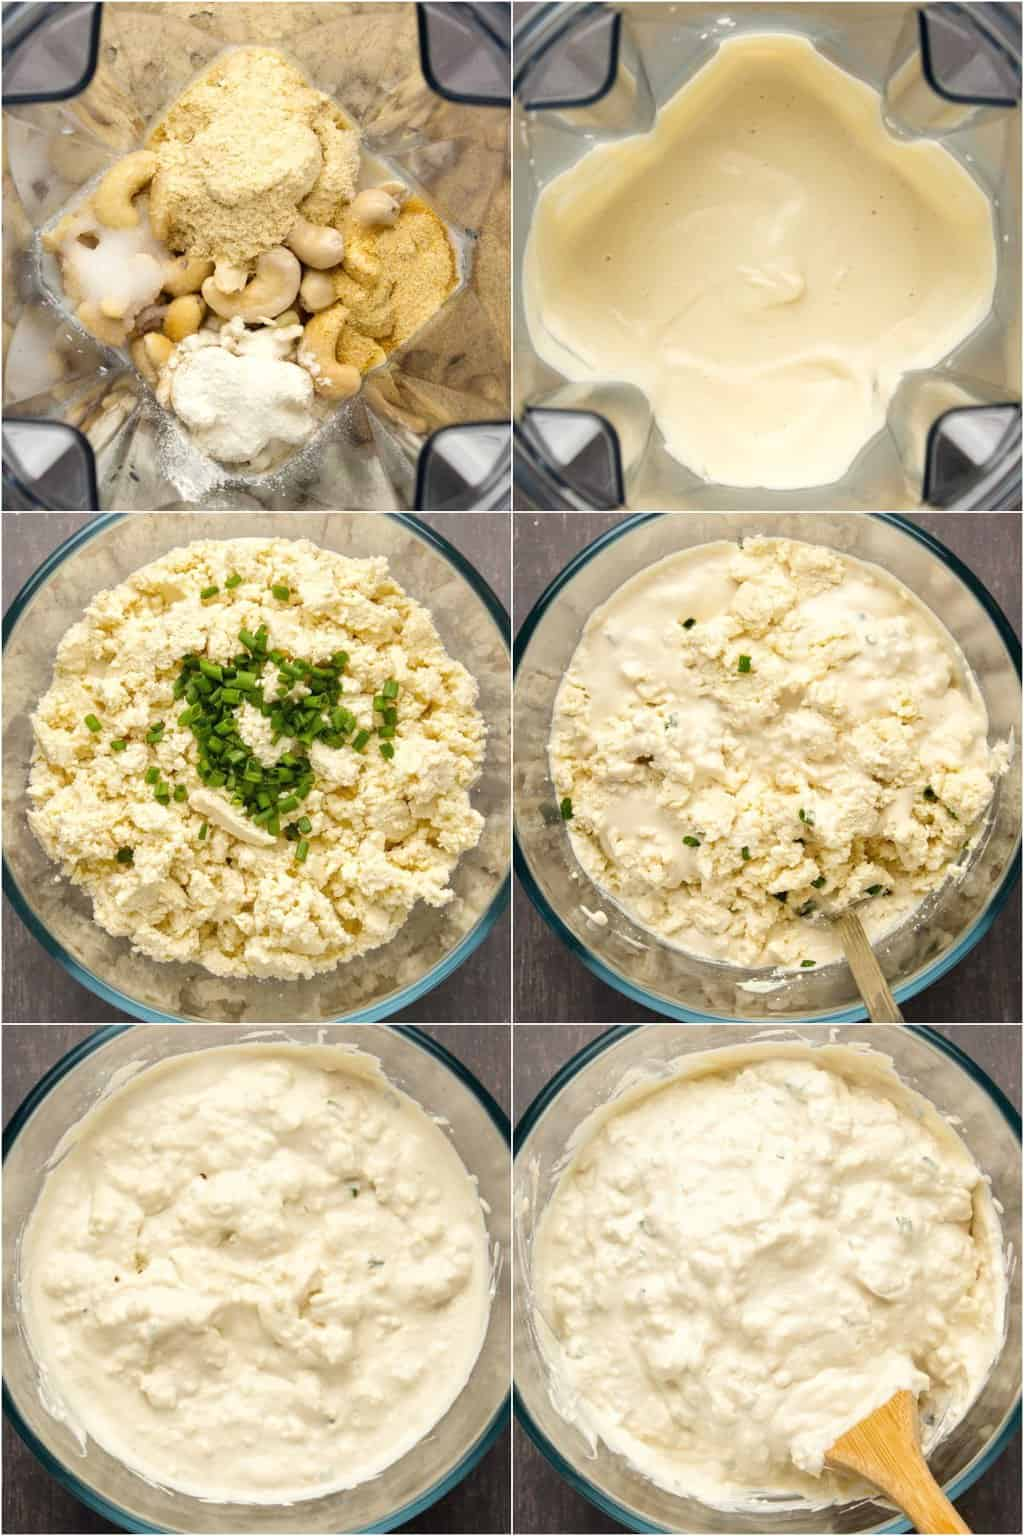 Step by step process photo collage of making vegan cottage cheese.